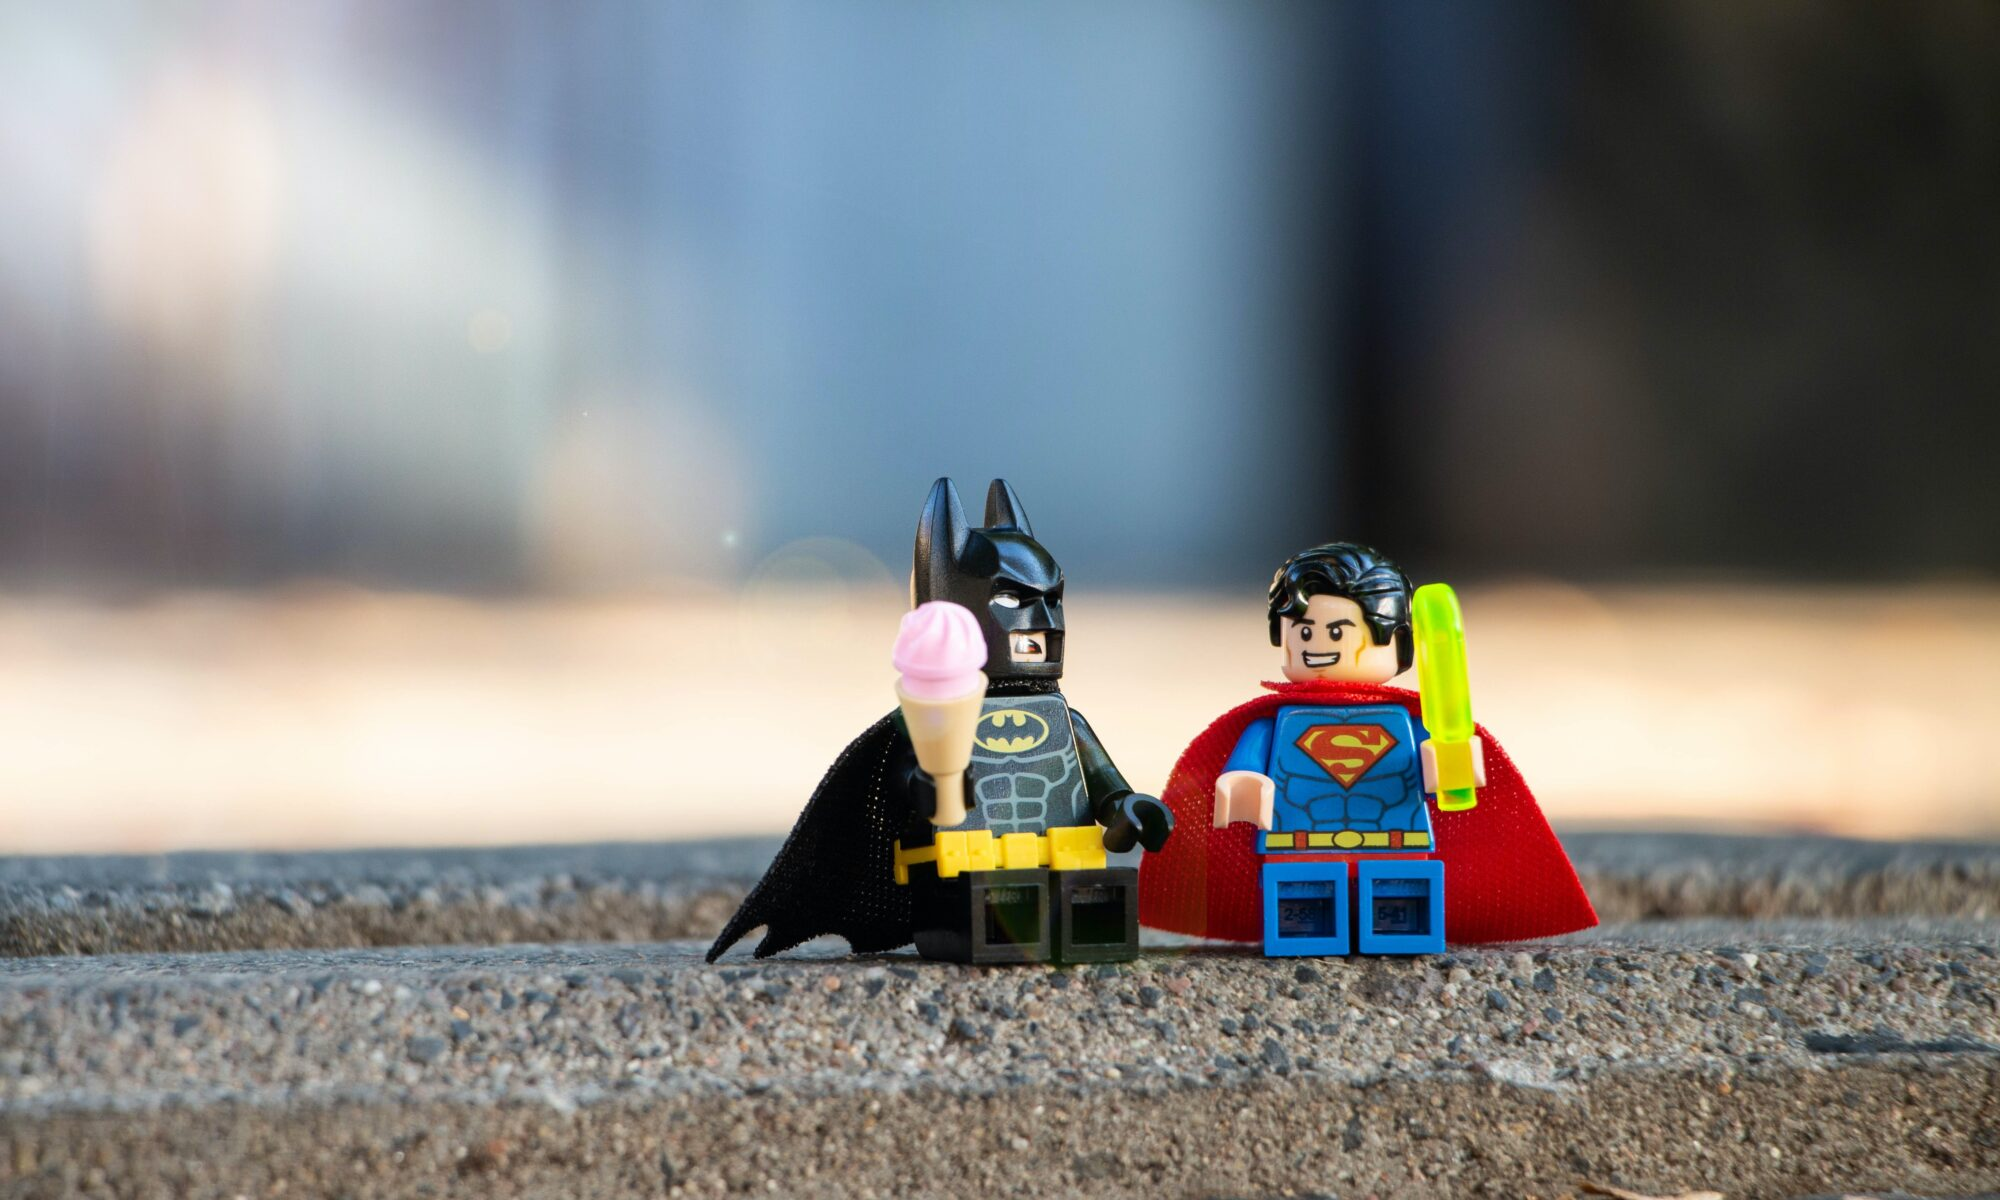 turning the fear of criticism into SUPERPOWERS - image of batman and superman lego characters by yulia matvienko for unsplash